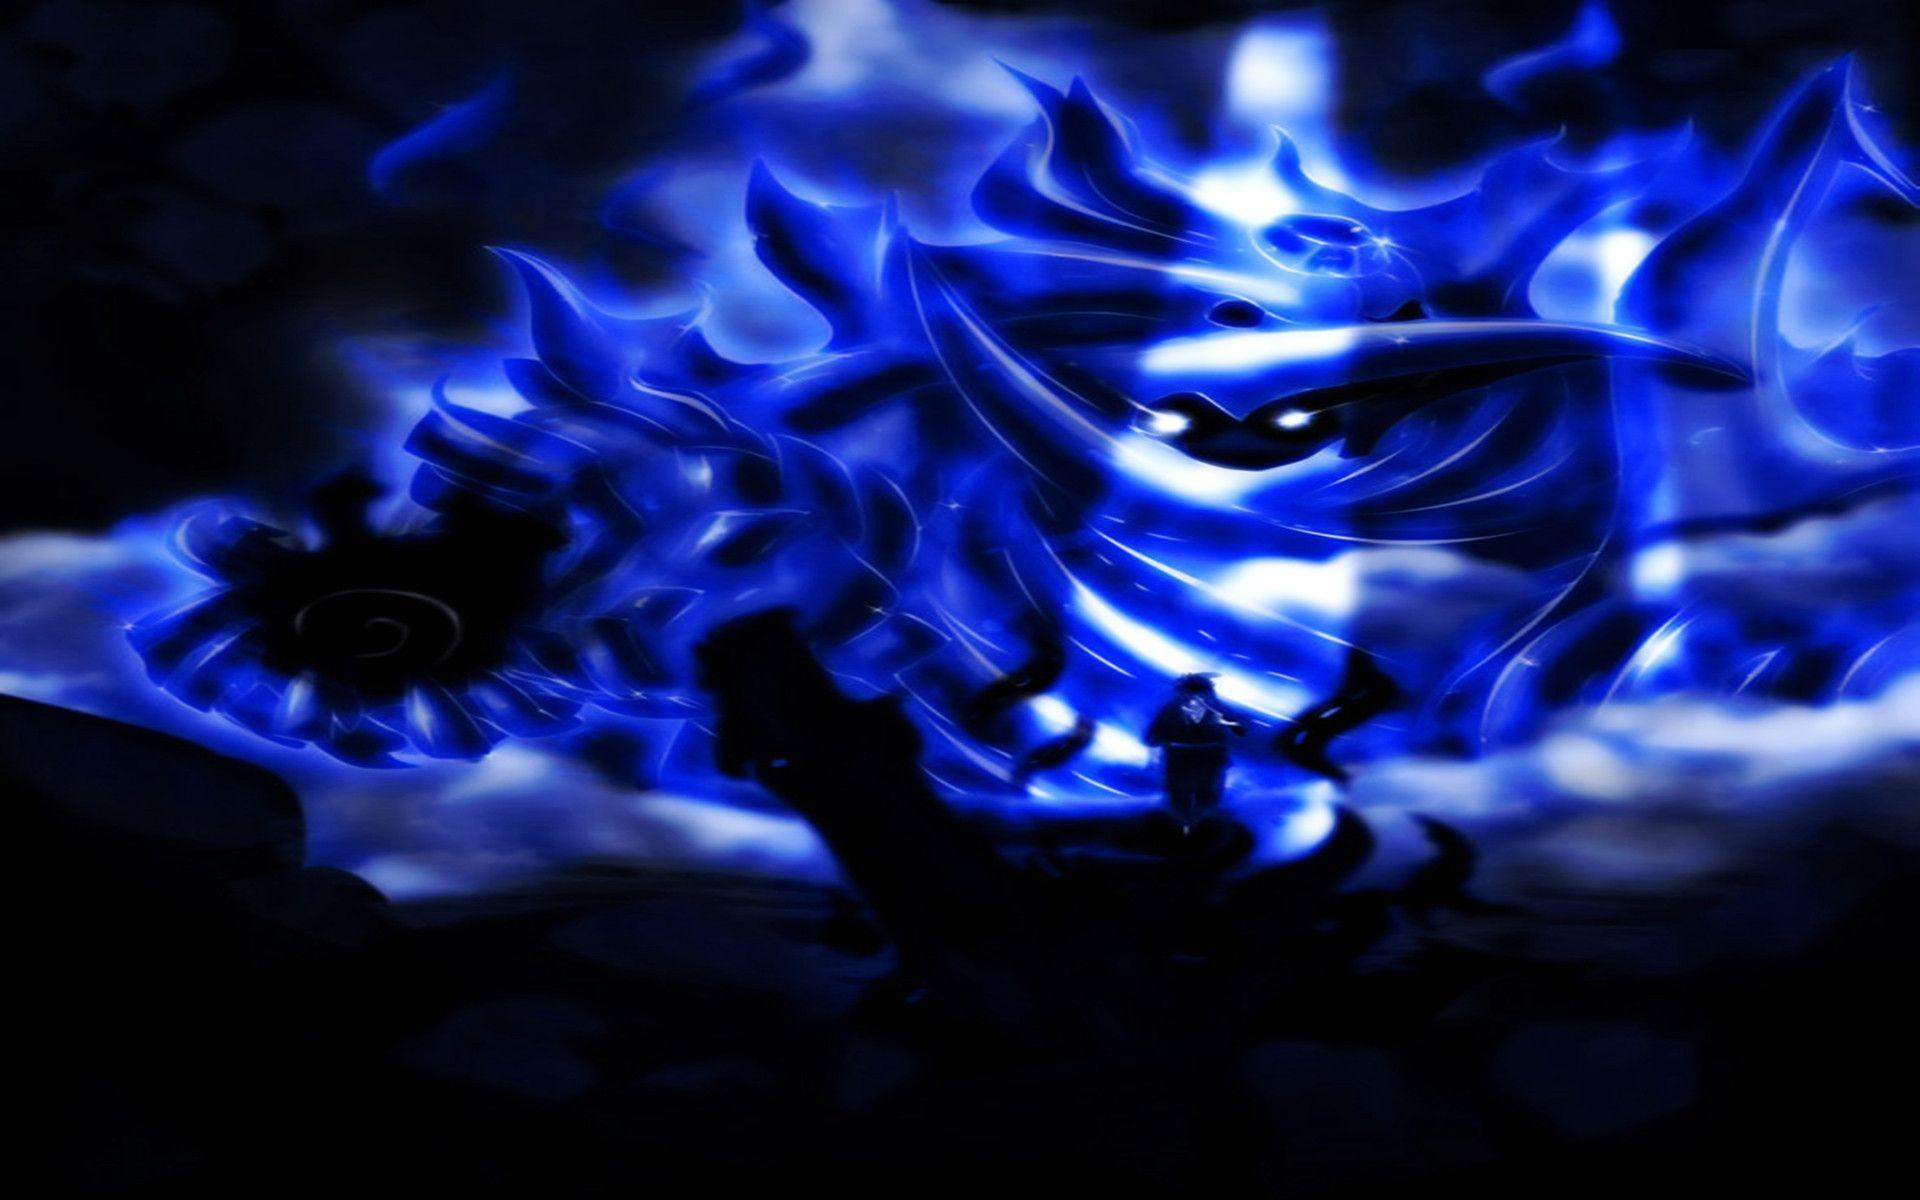 Wallpaper Naruto Keren 3d Sasuke Susanoo Wallpapers Wallpaper Cave